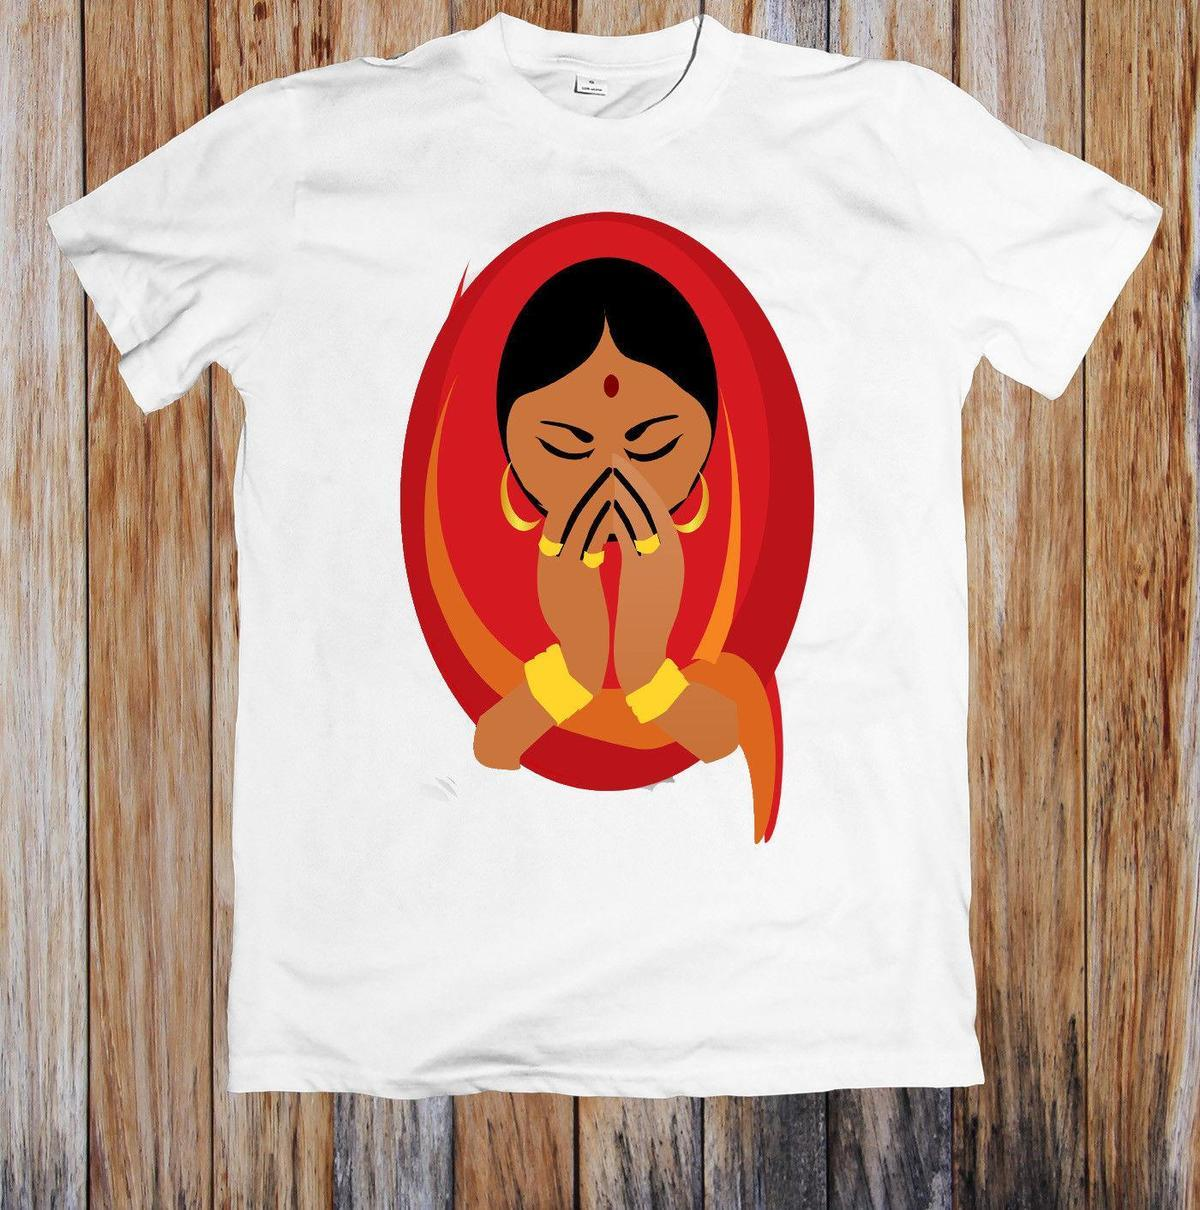 20e3b358e INDIAN CULTURE WOMAN UNISEX T SHIRT Funny T Shirt Designs Make A Tee Shirt  From Amesion30, $12.08| DHgate.Com